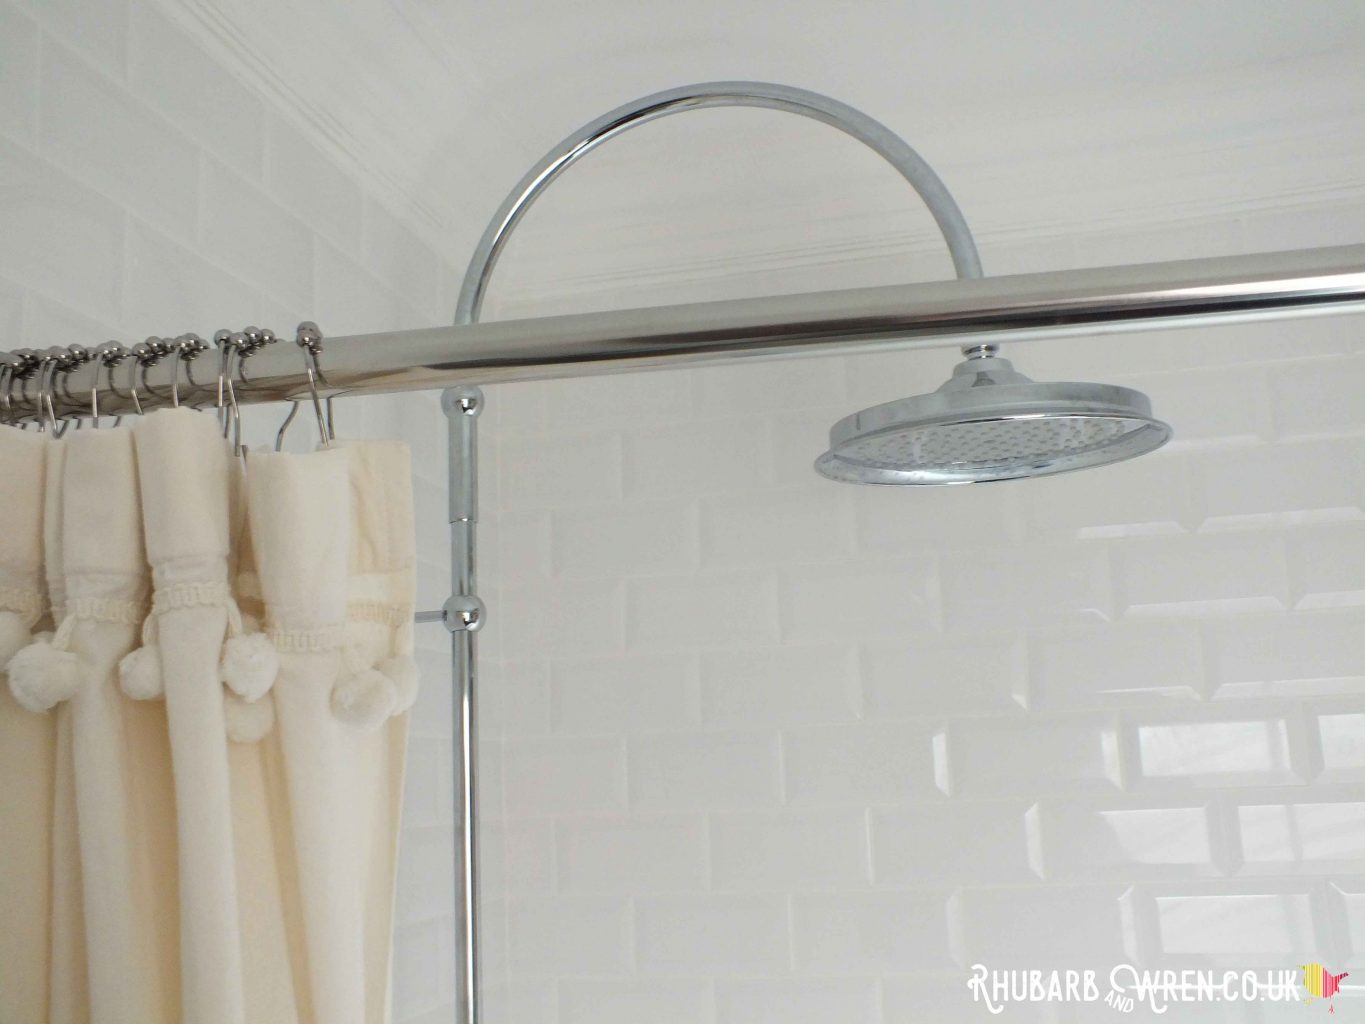 Cotton shower curtain with pompom decorations, and rainfall shower